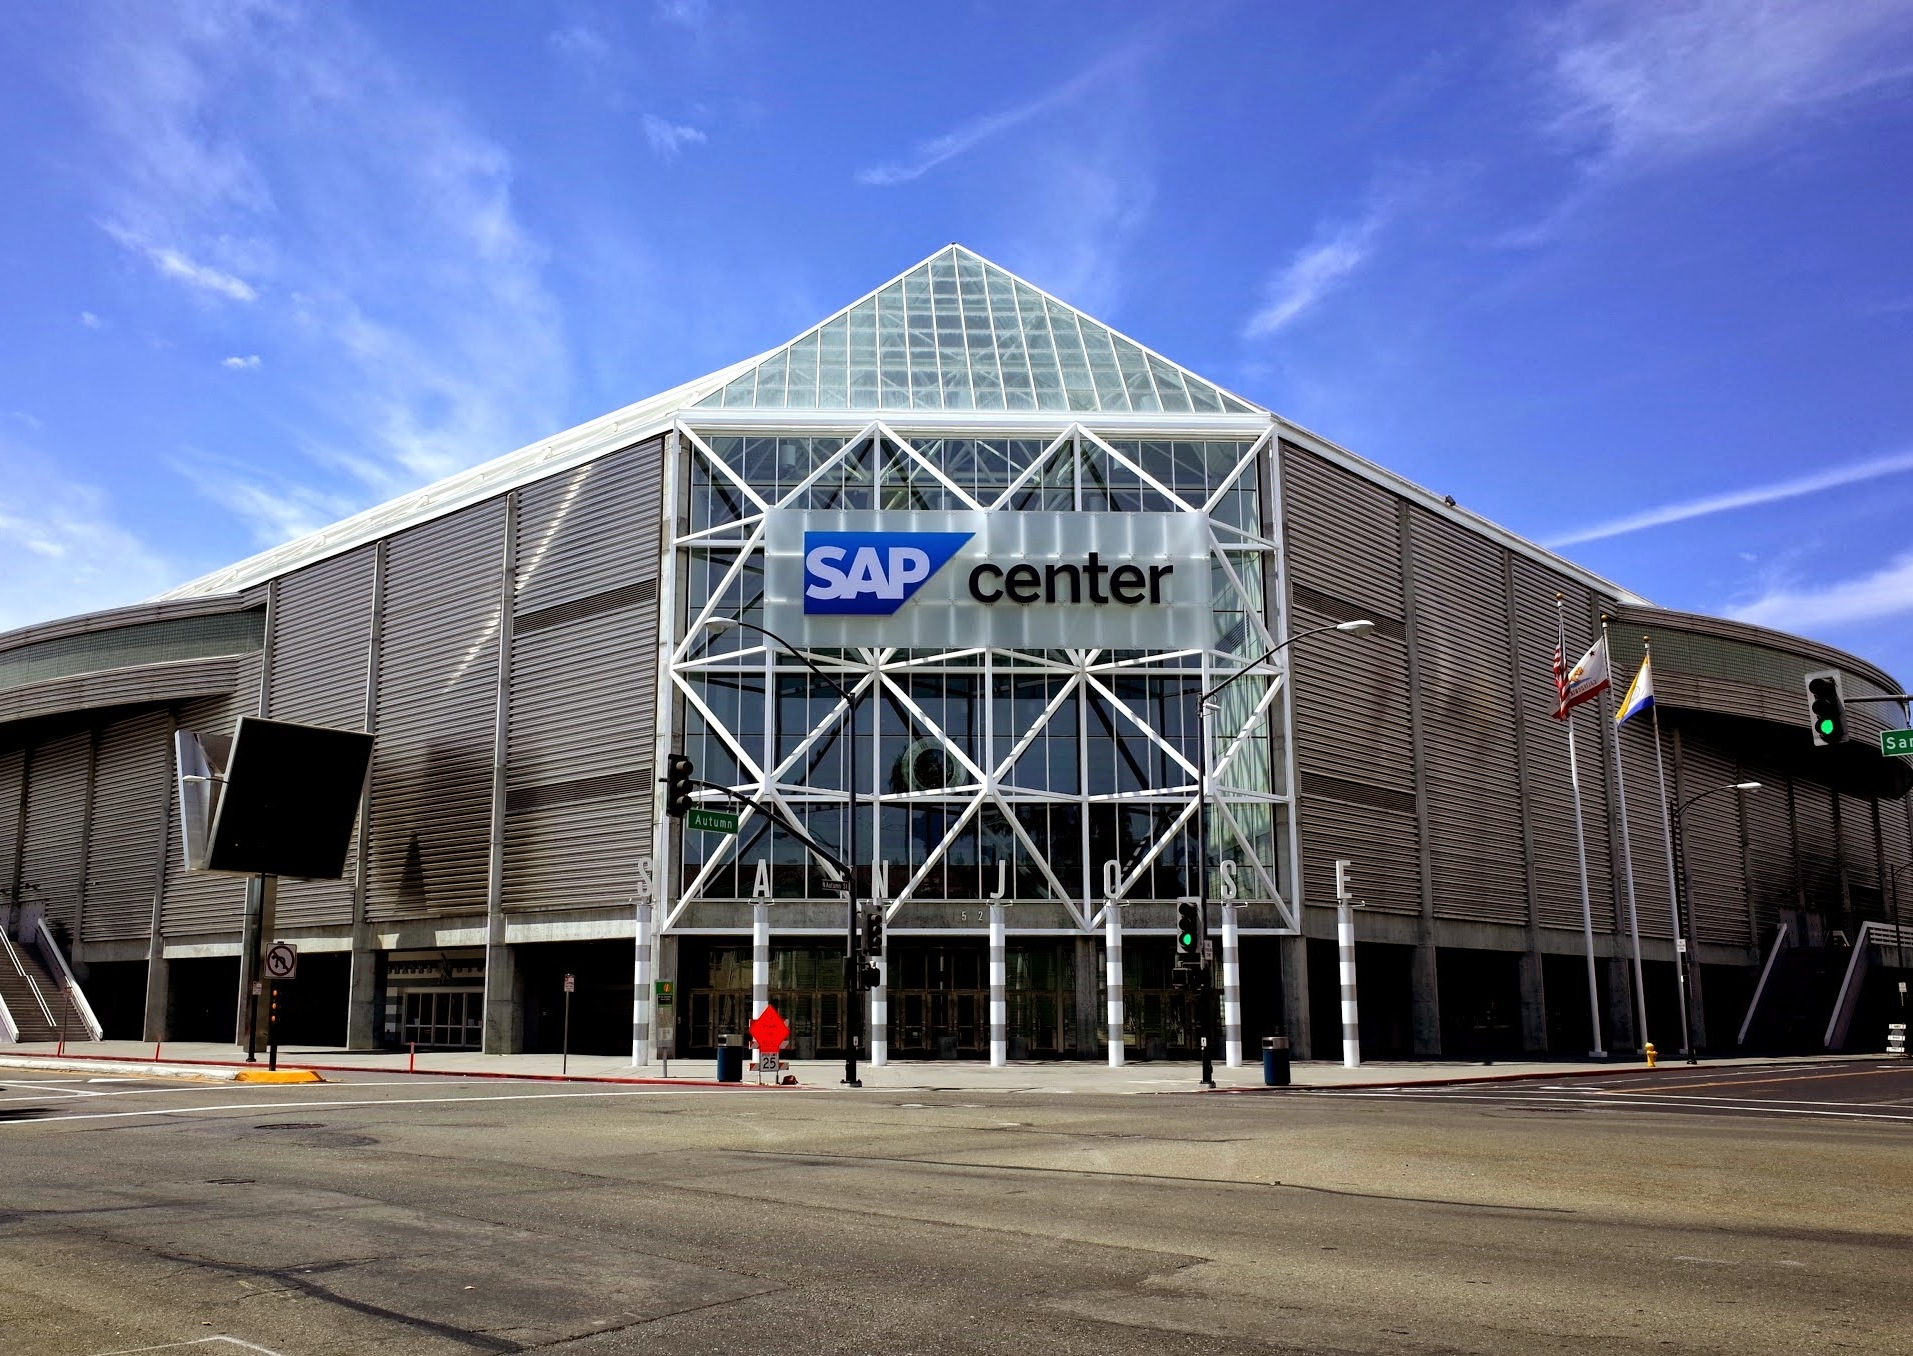 The SAP Center